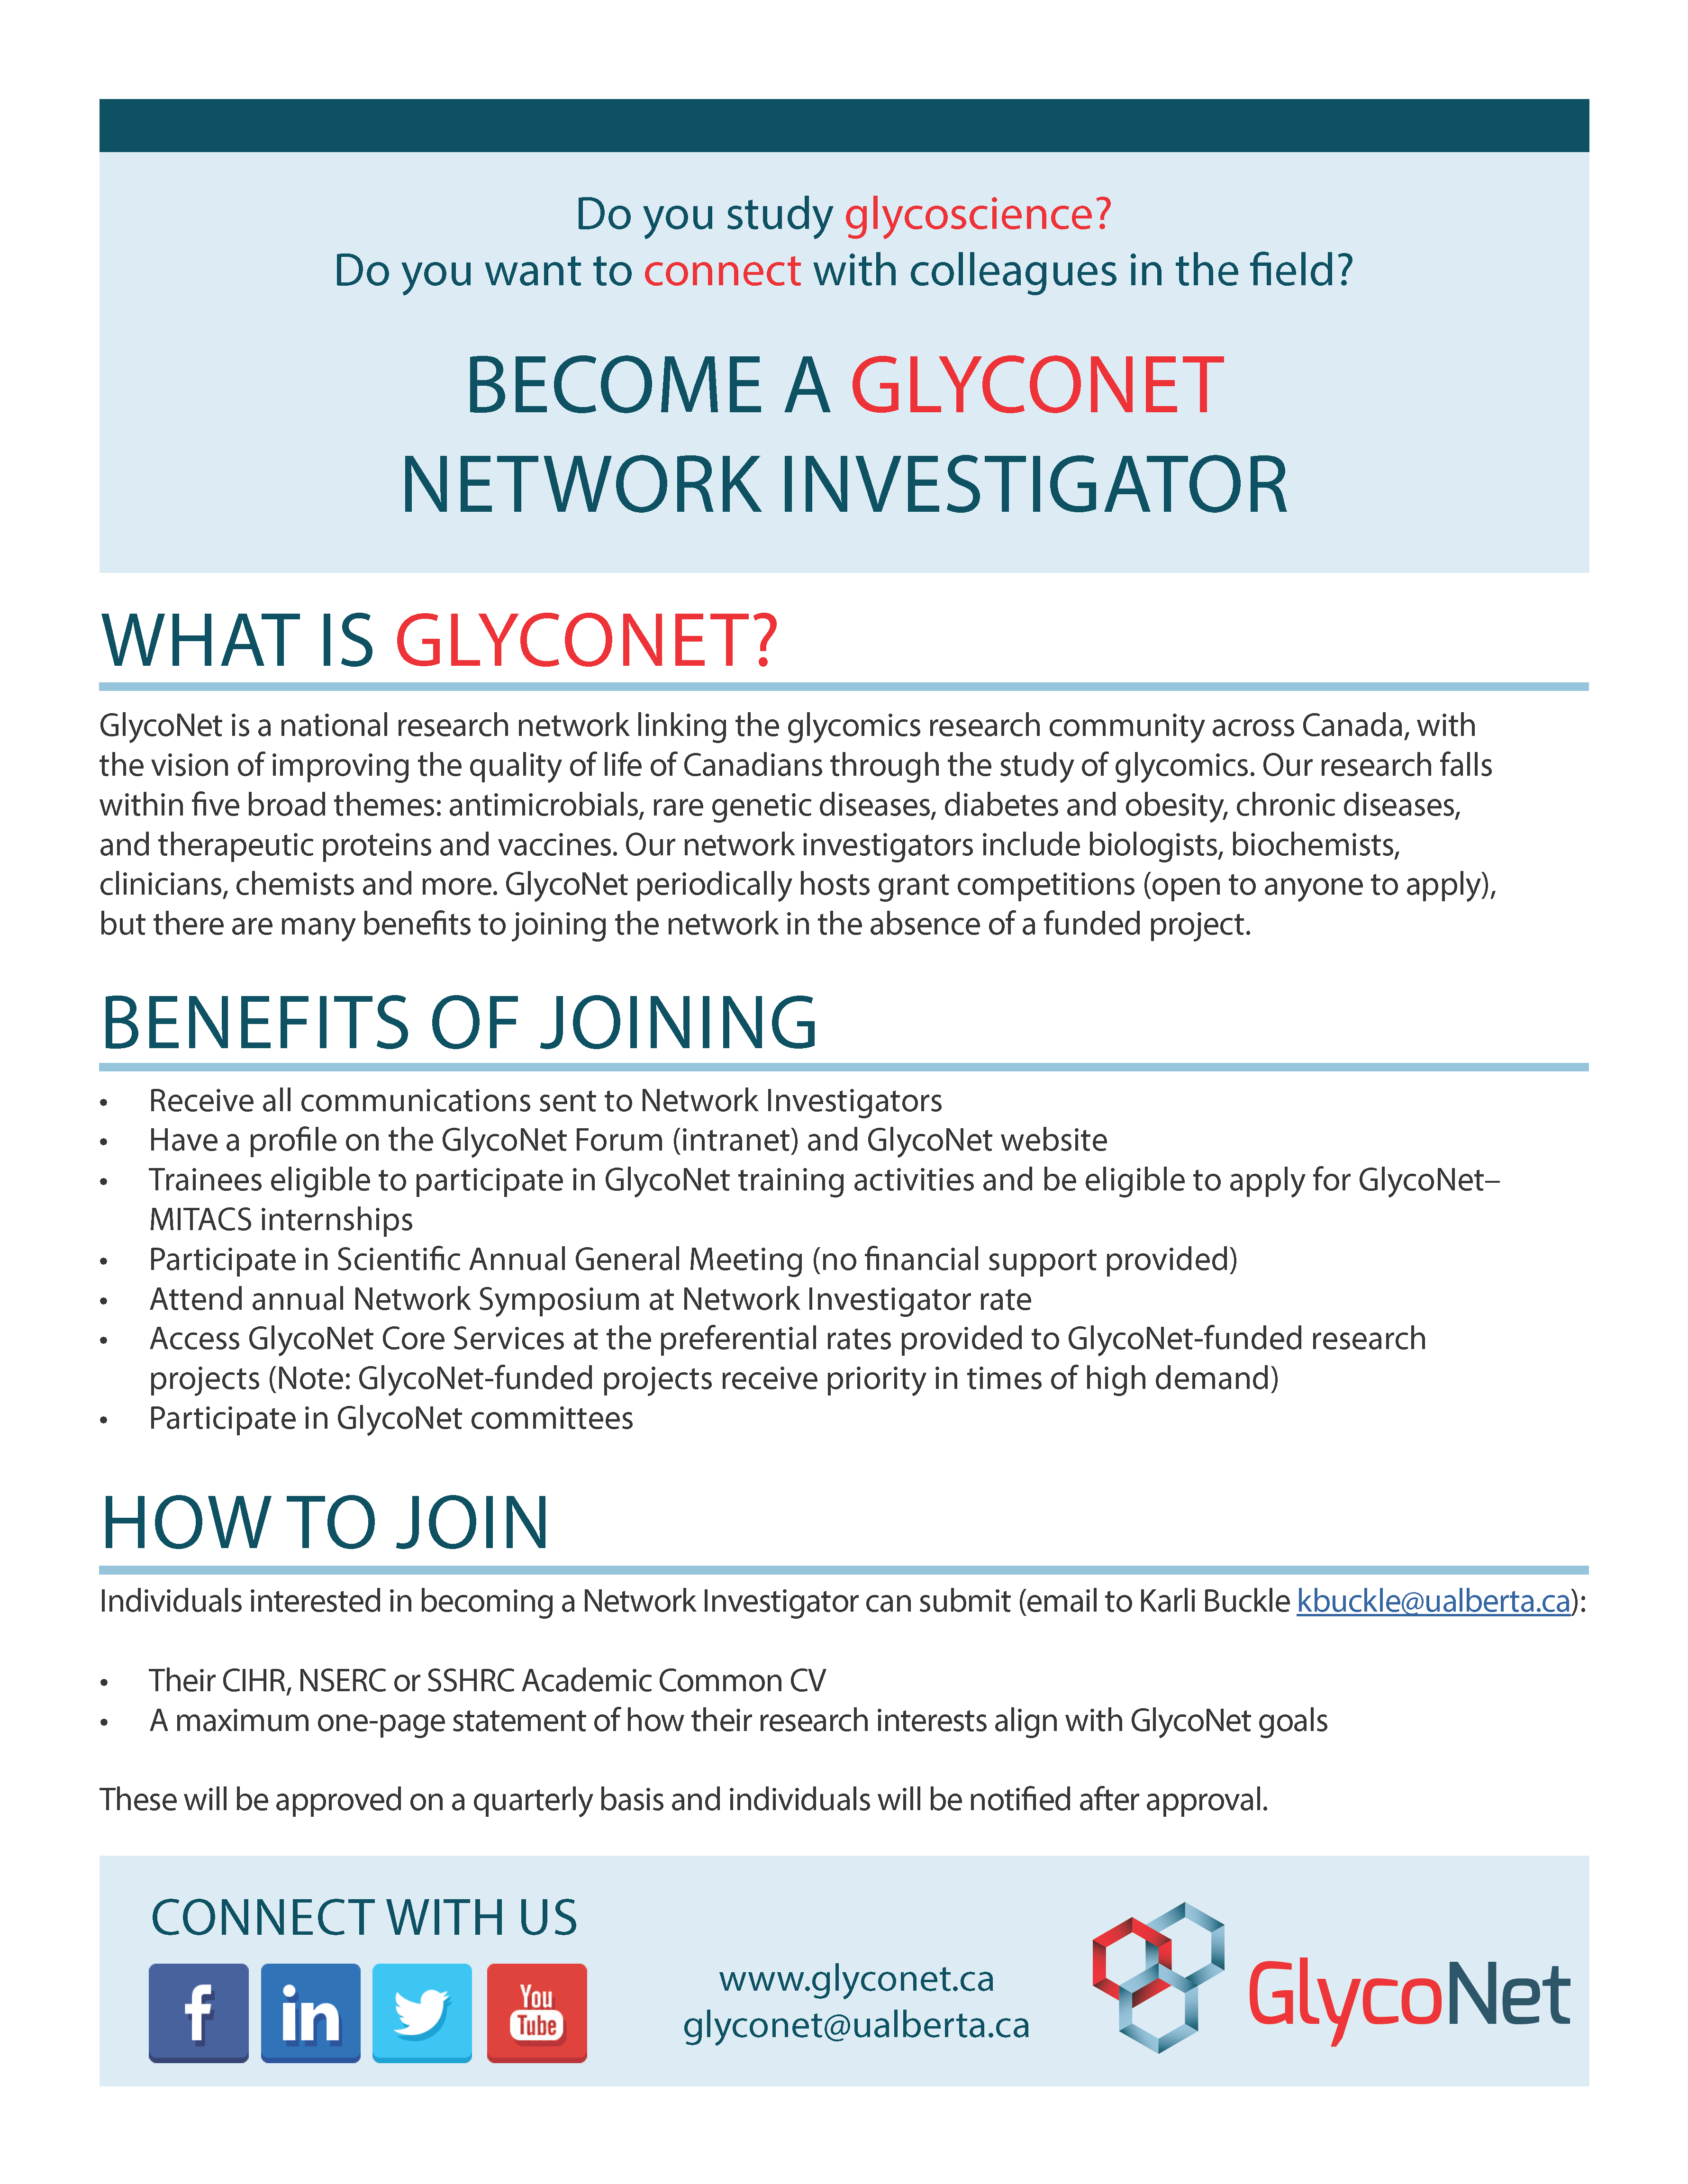 what is glyconet